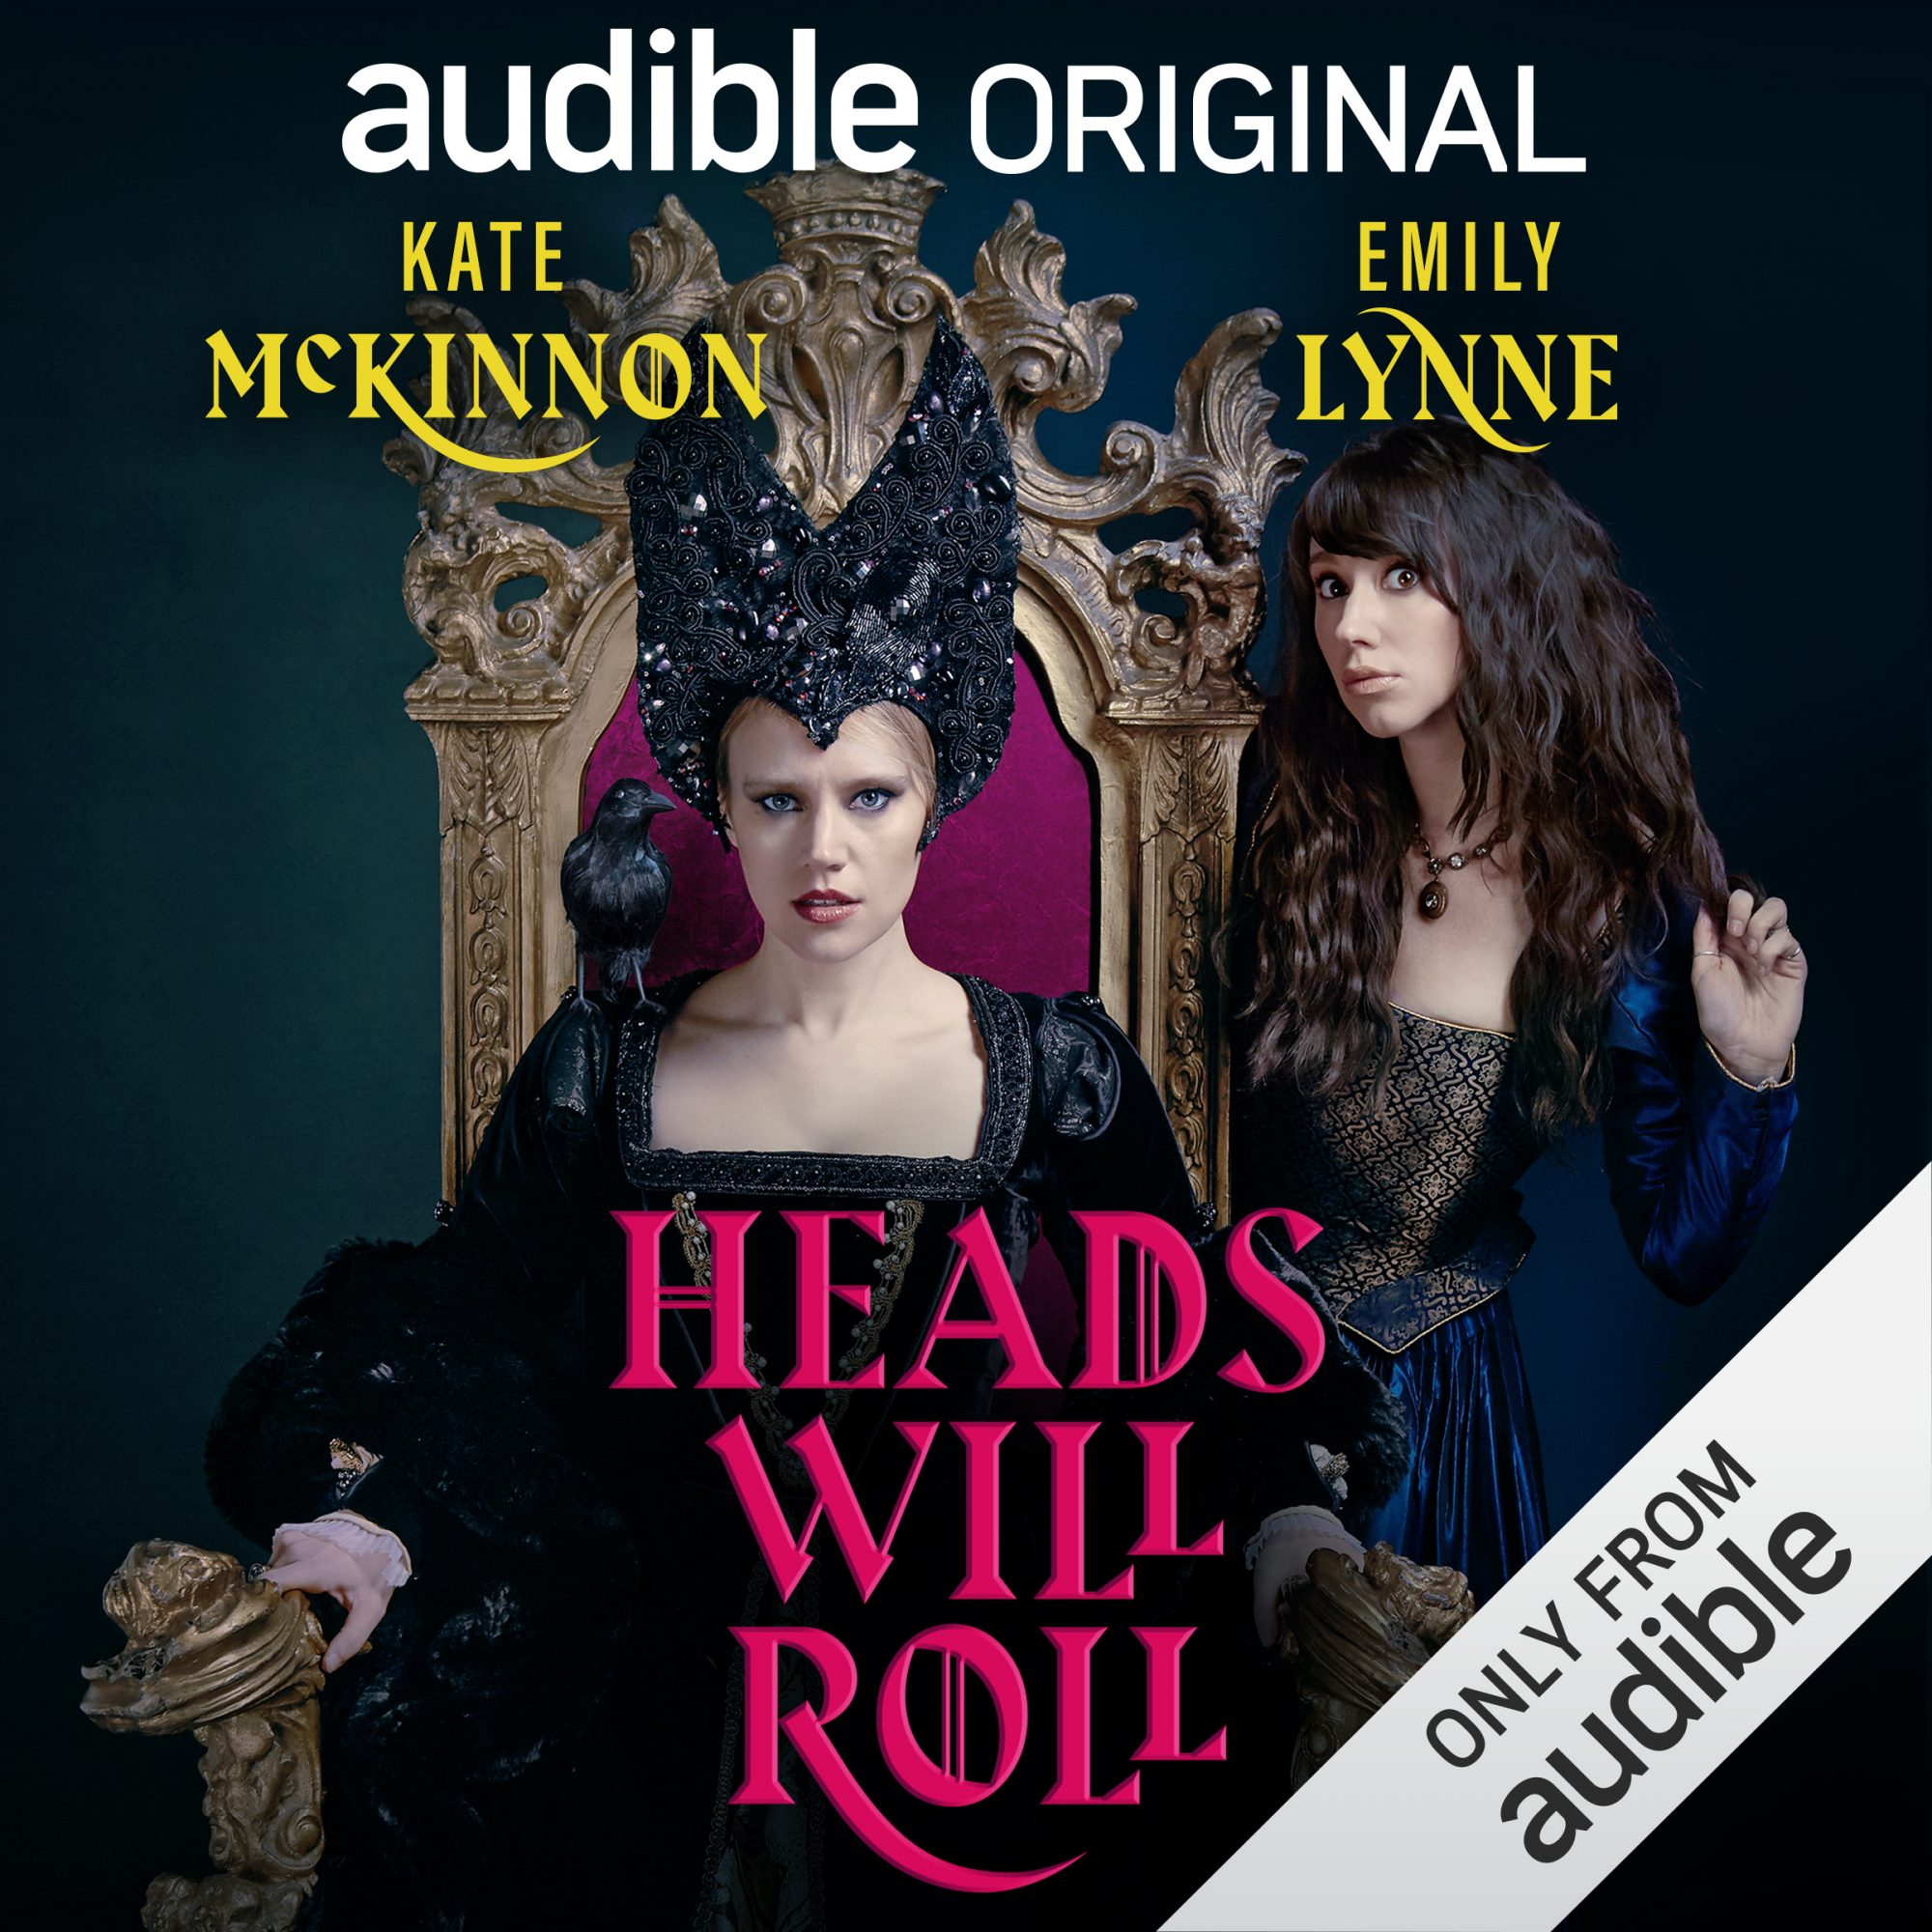 Heads Will Roll Kate McKinnon is taking her comedy to Audible. Starting today, the Saturday Night Live star and her sister, Emily Lynne, can be heard on Heads Will Roll, an audio-only original scripted comedy that plays out over 10 episodes.